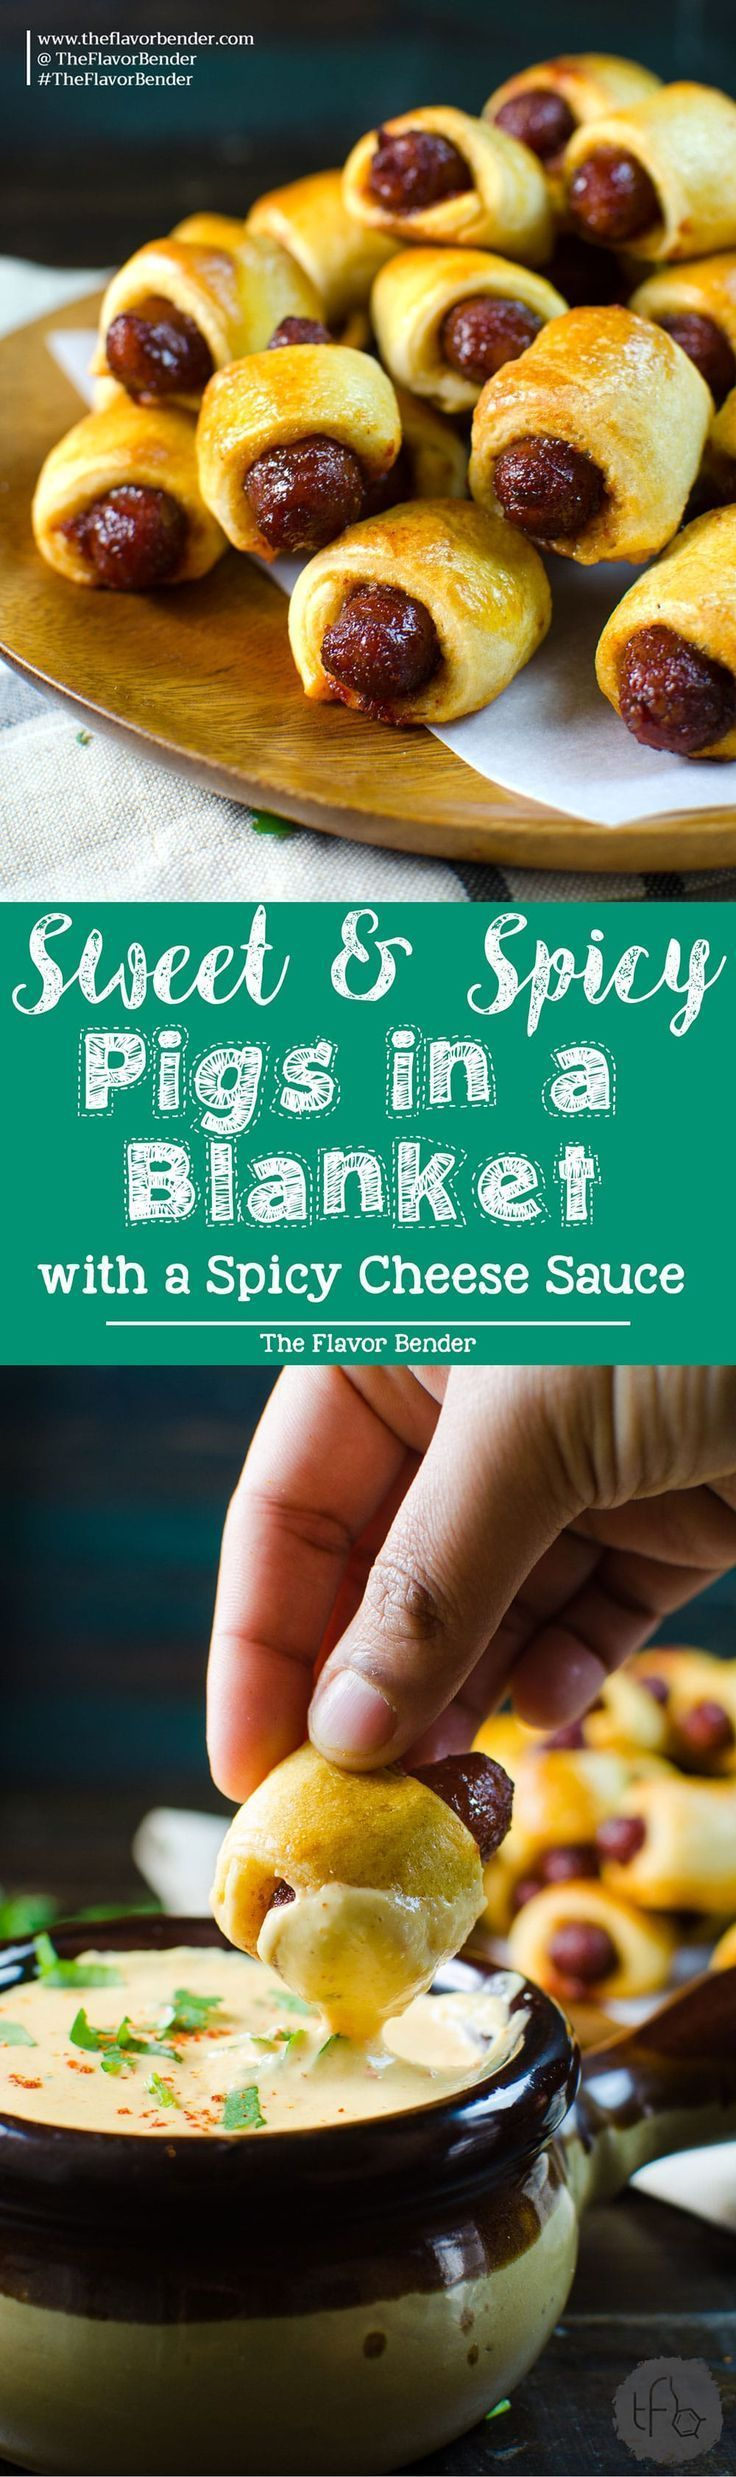 Sweet and Spicy Pigs in a Blanket - Kick up your regular Pigs in a Blanket with this sweet and spicy version served with a creamy spicy cheese sauce, spiced with Habanero and Mustard. Perfect for Holiday Parties, Game day snacks, March Madness or any party! Recipe from http://theflavorbender.com Party food | Appetizers | Pigs in a Blanket | Crescent dough | Nacho Sauce | Cheese Sauce | Game Day | March Madness | Holiday Appetizers